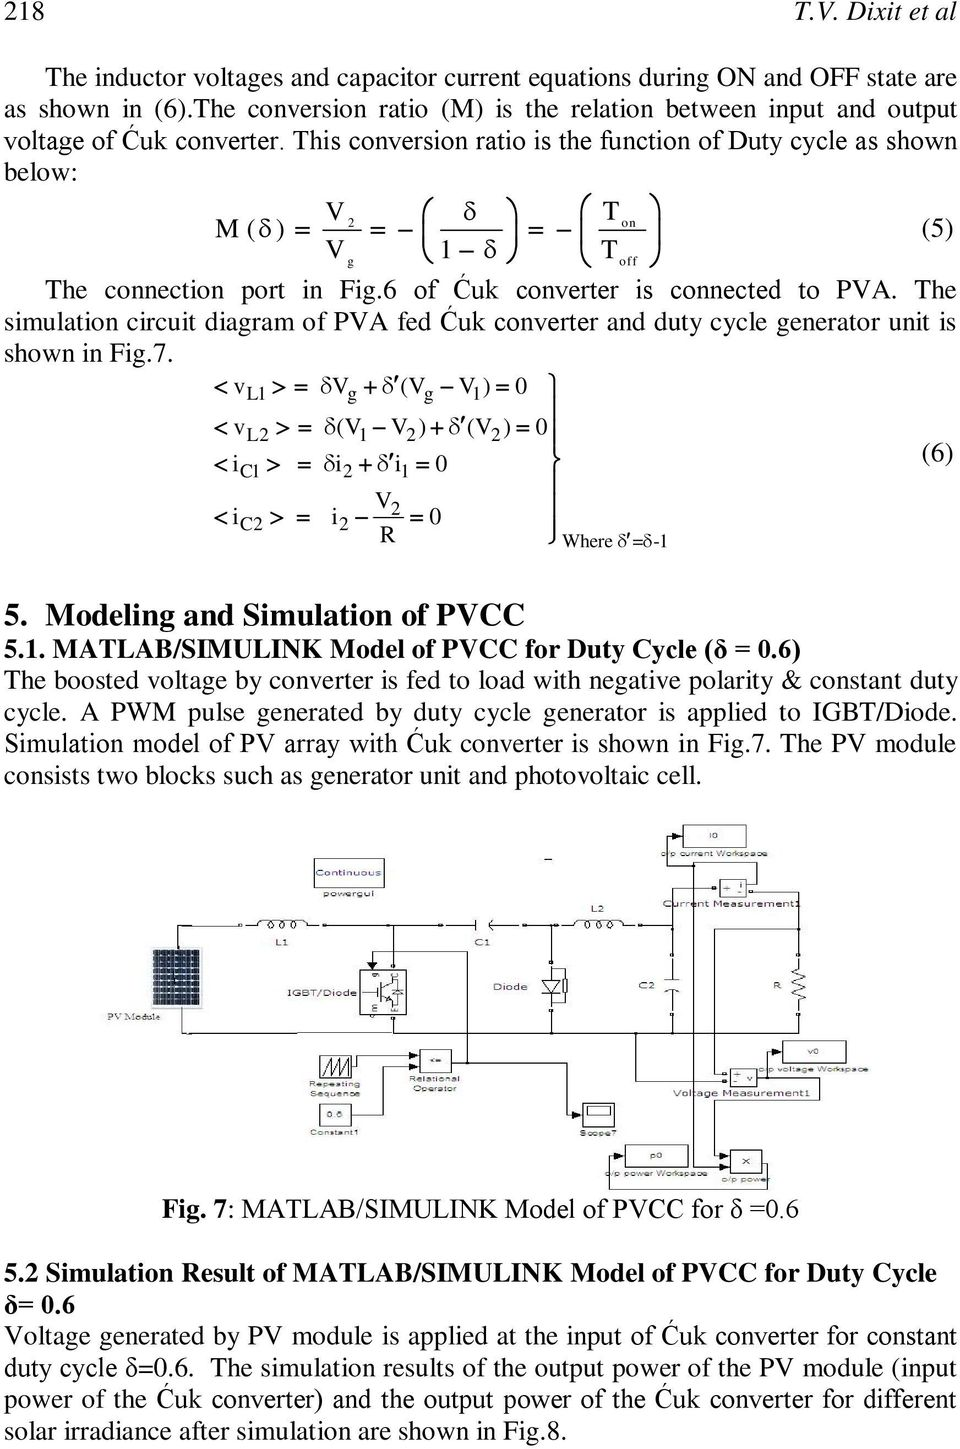 Pv Cell Wiring Diagram Simulation And Analysis Of Perturb Observe Mppt Algorithm For This Conversion Ratio Is The Function Duty Cycle As Shown Below V 2 T